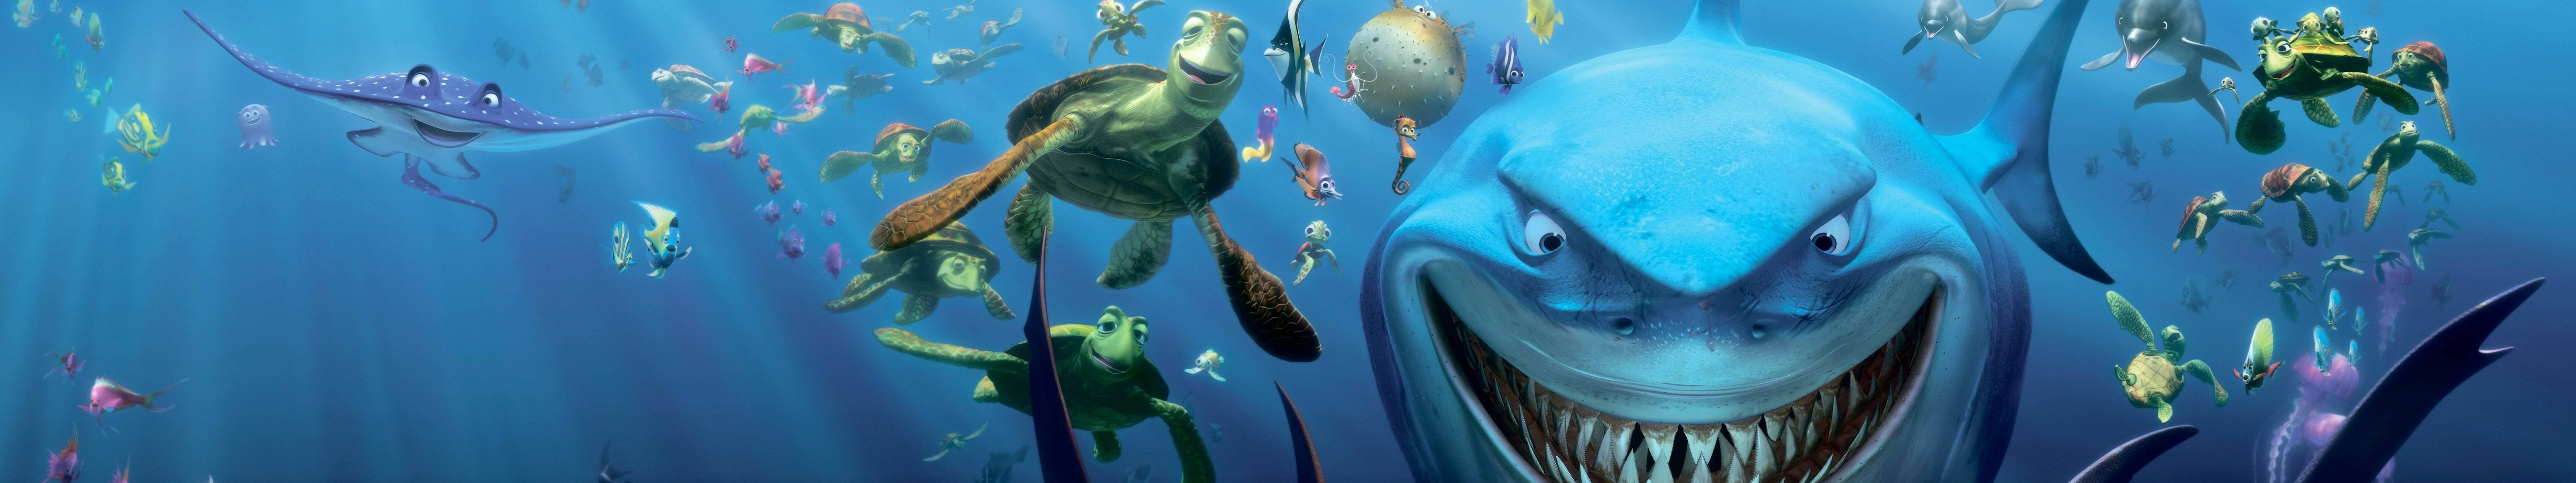 Finding-Nemo-Best-Animated-Movie-High-Quality-All-HD-wallpaper-wpc5804790